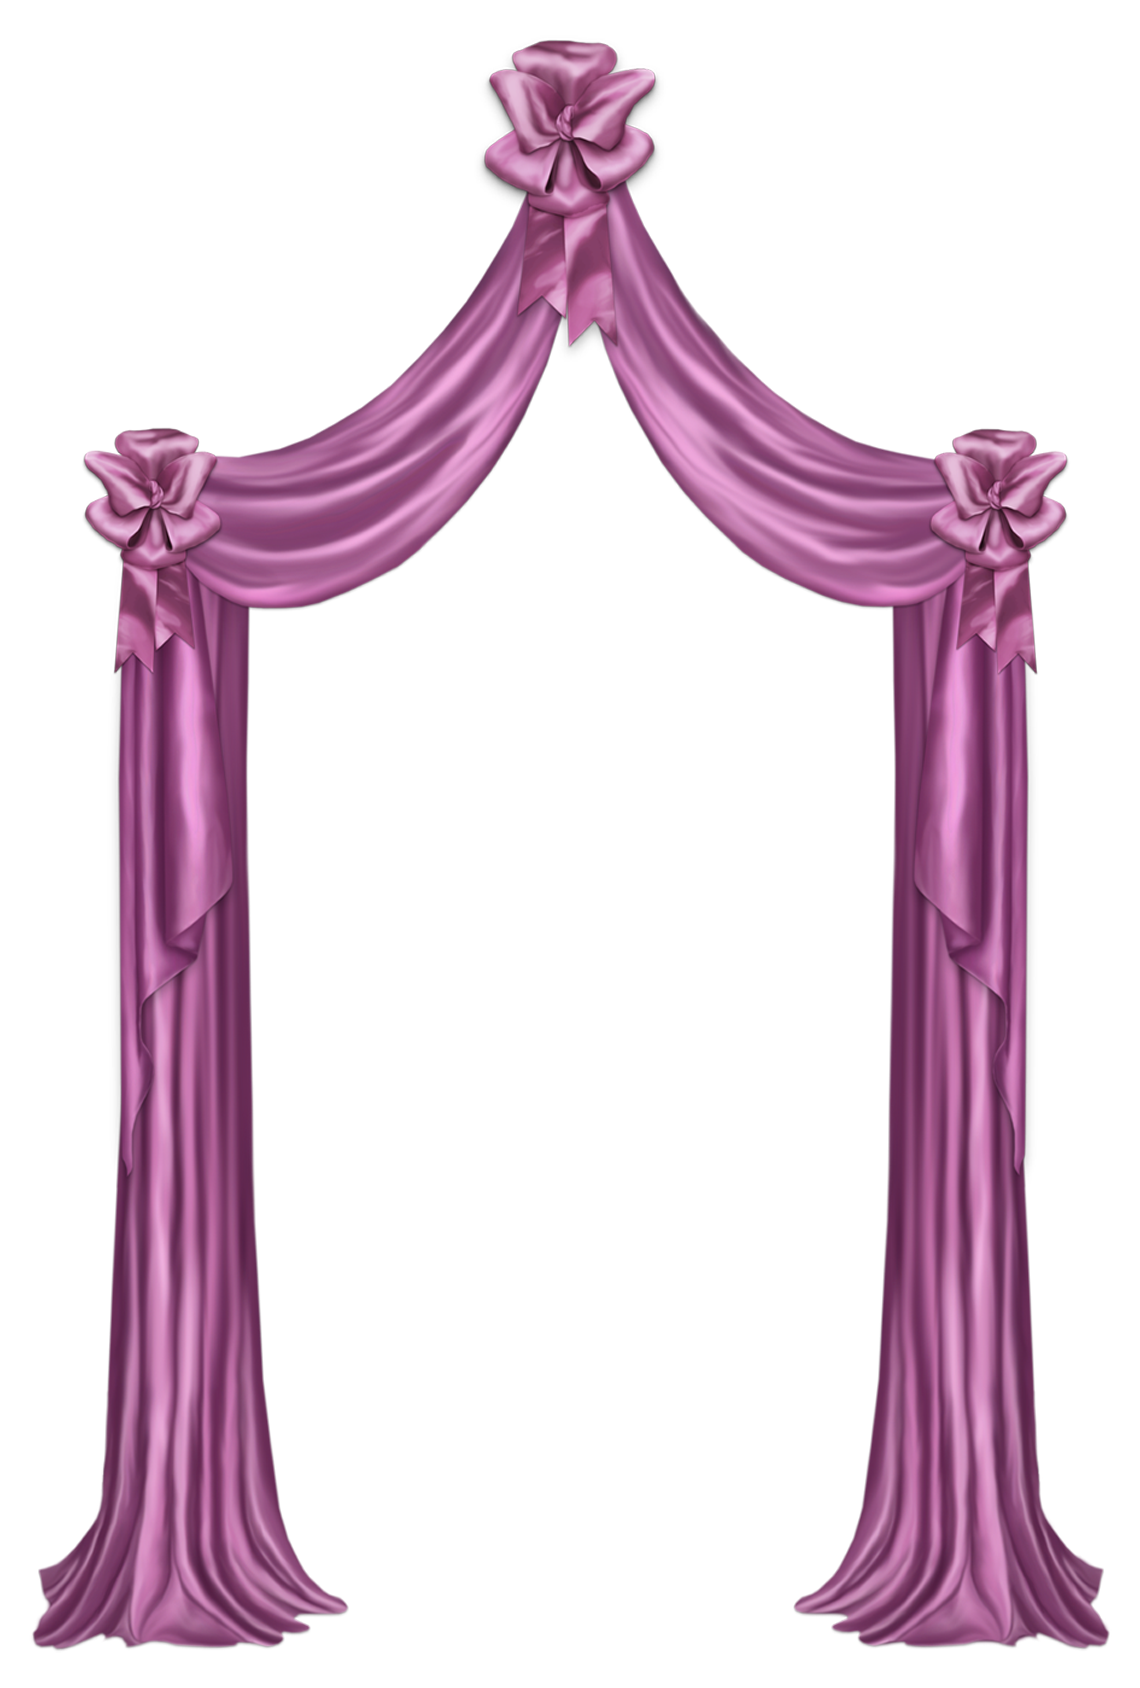 Decor png picture gallery. Curtains clipart pink curtain